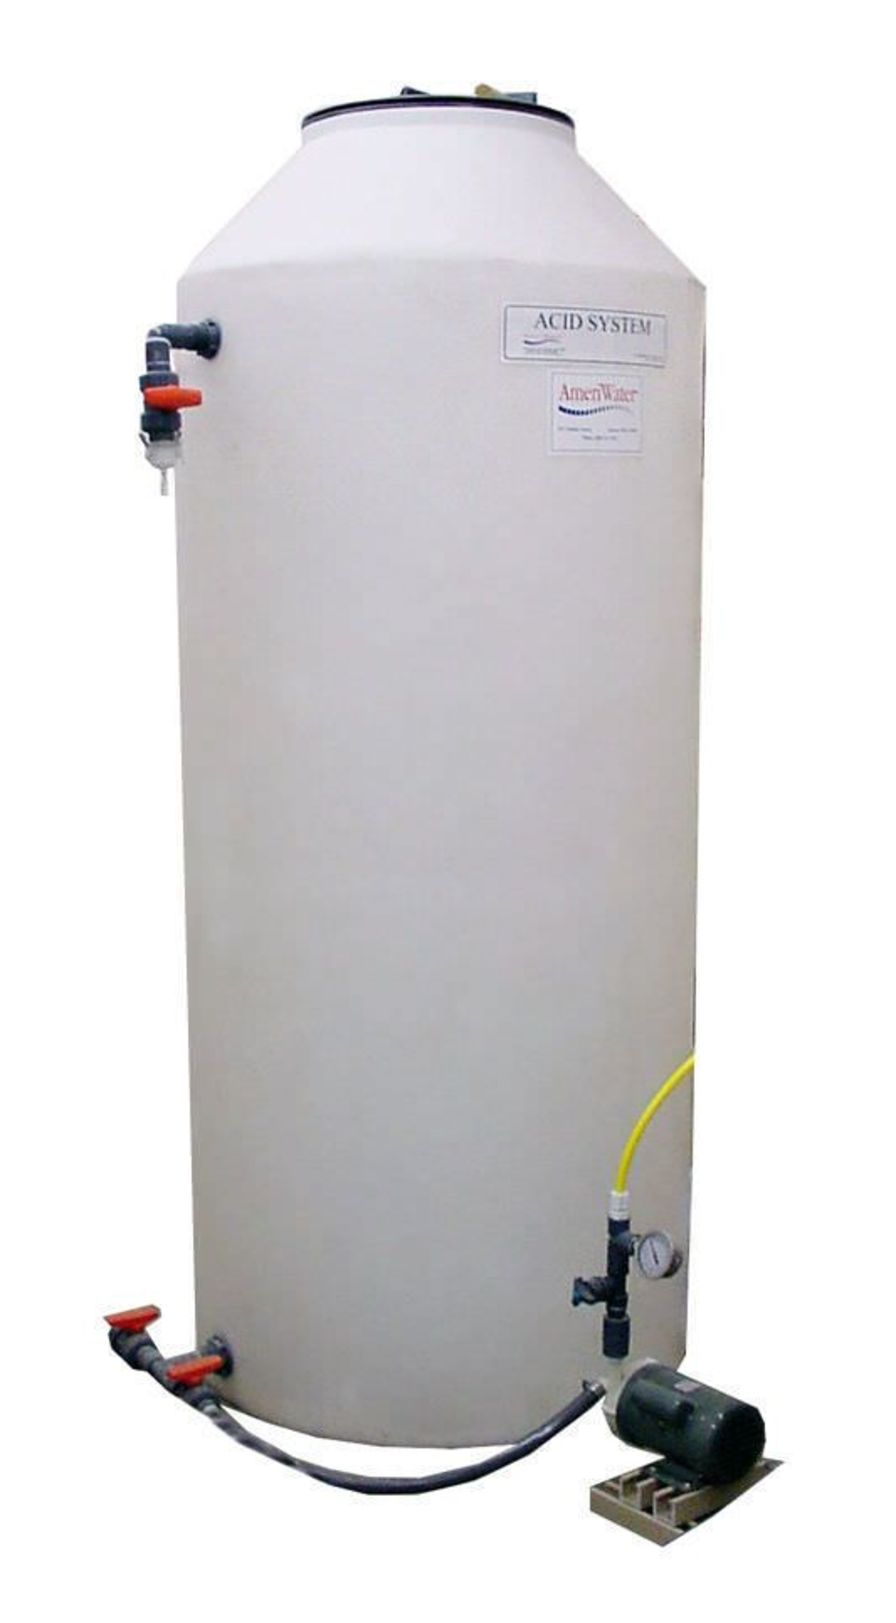 Concentrate distribution system for hemodialysis AmeriWater